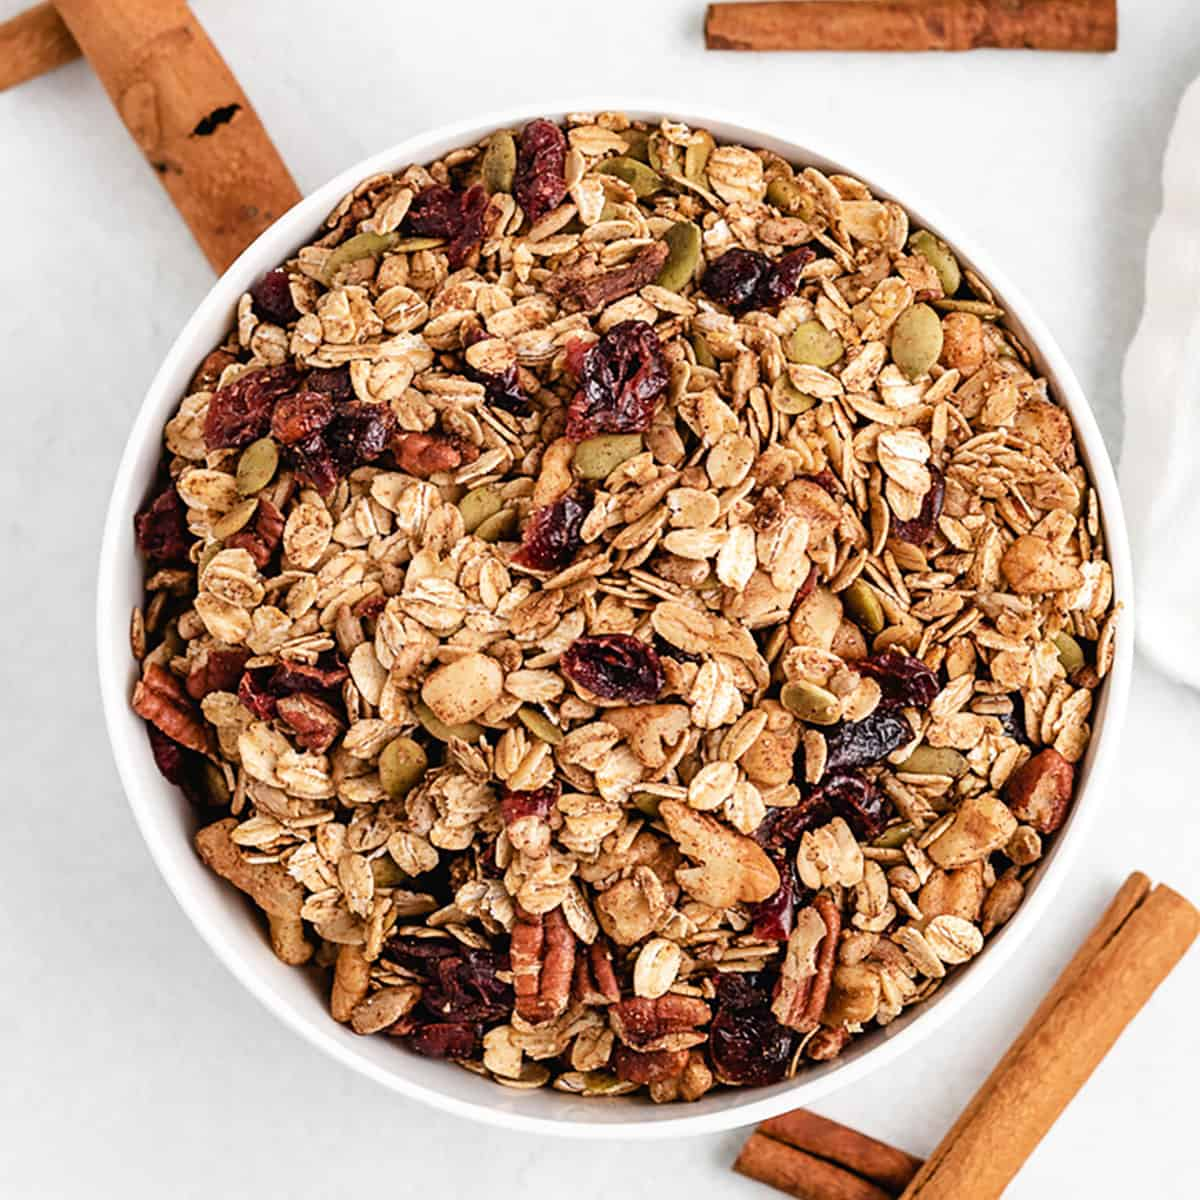 An aerial view of the pumpkin spice granola in a bowl.